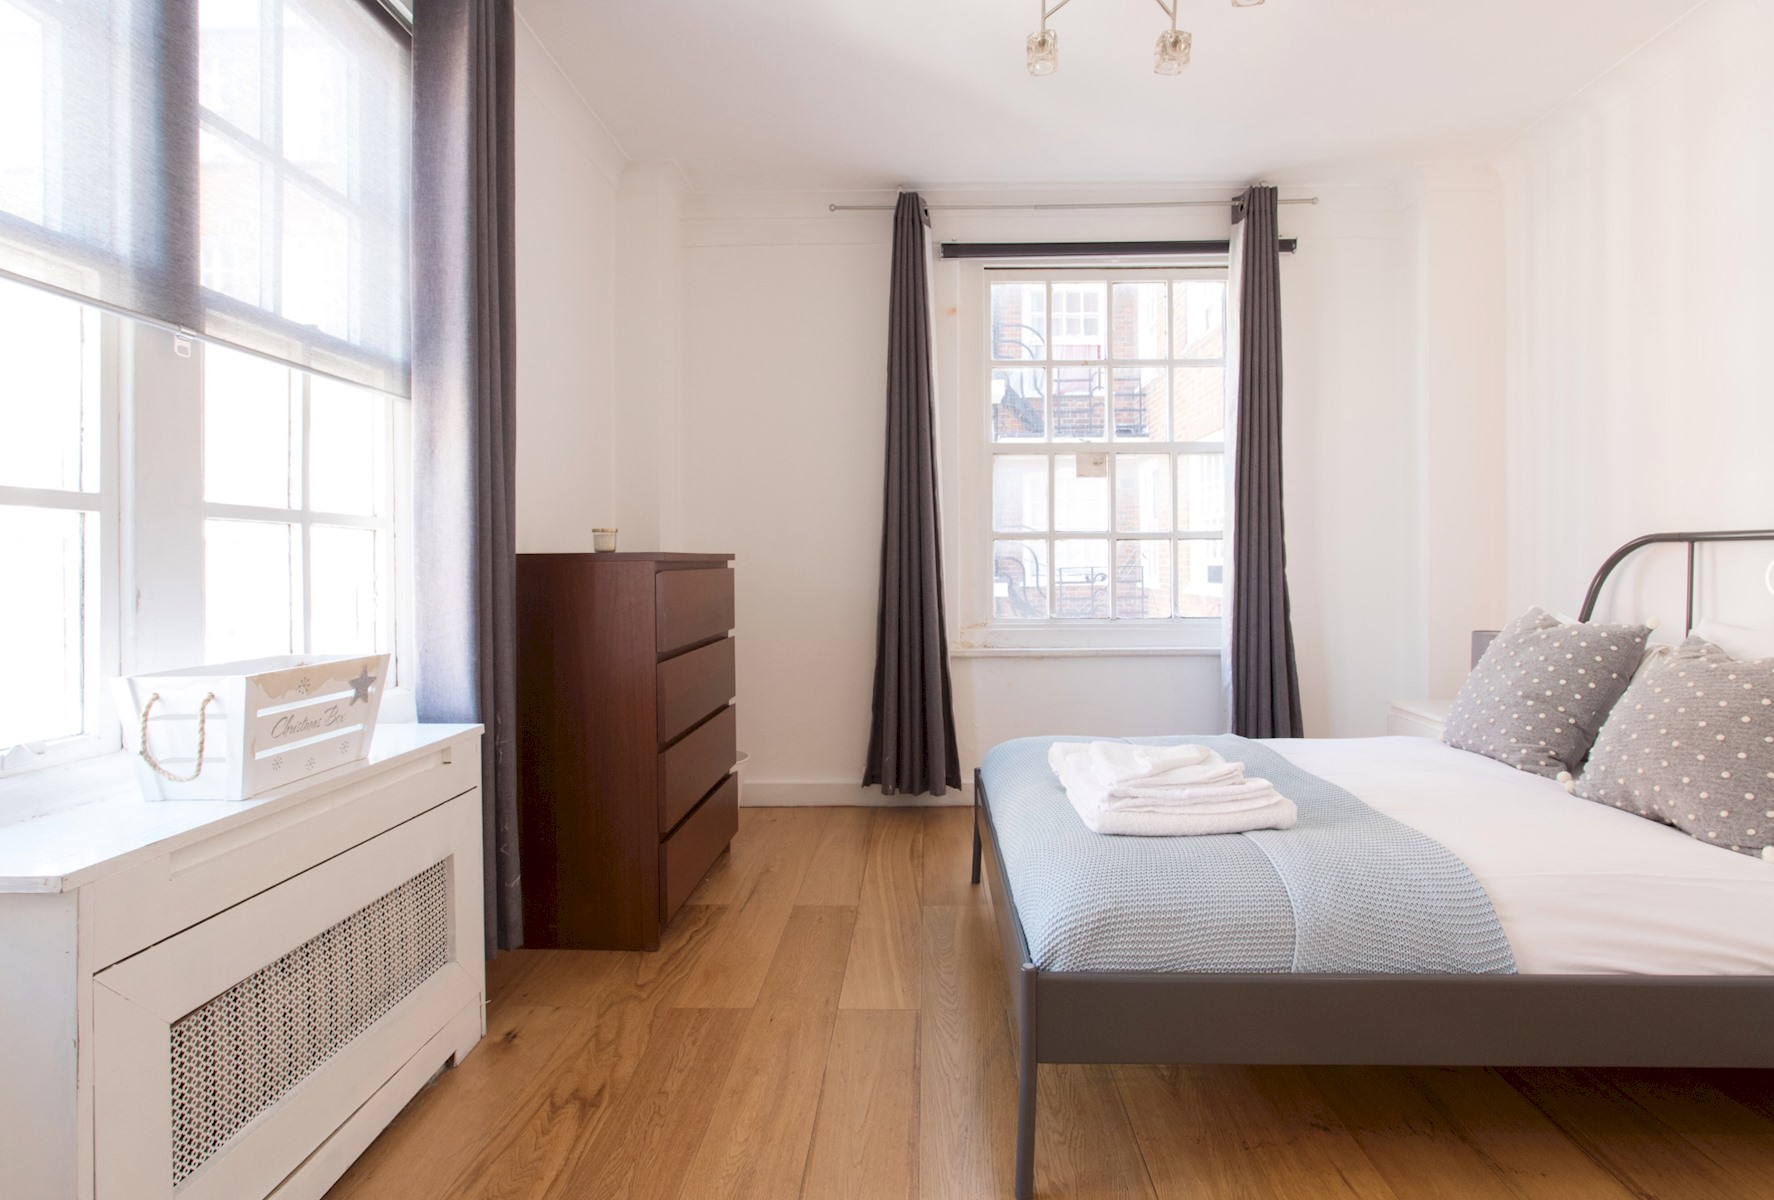 3 Bedroom Apartment near Edgware Road & Hyde Park with lift/elevator (RU/CL) photo 13809148